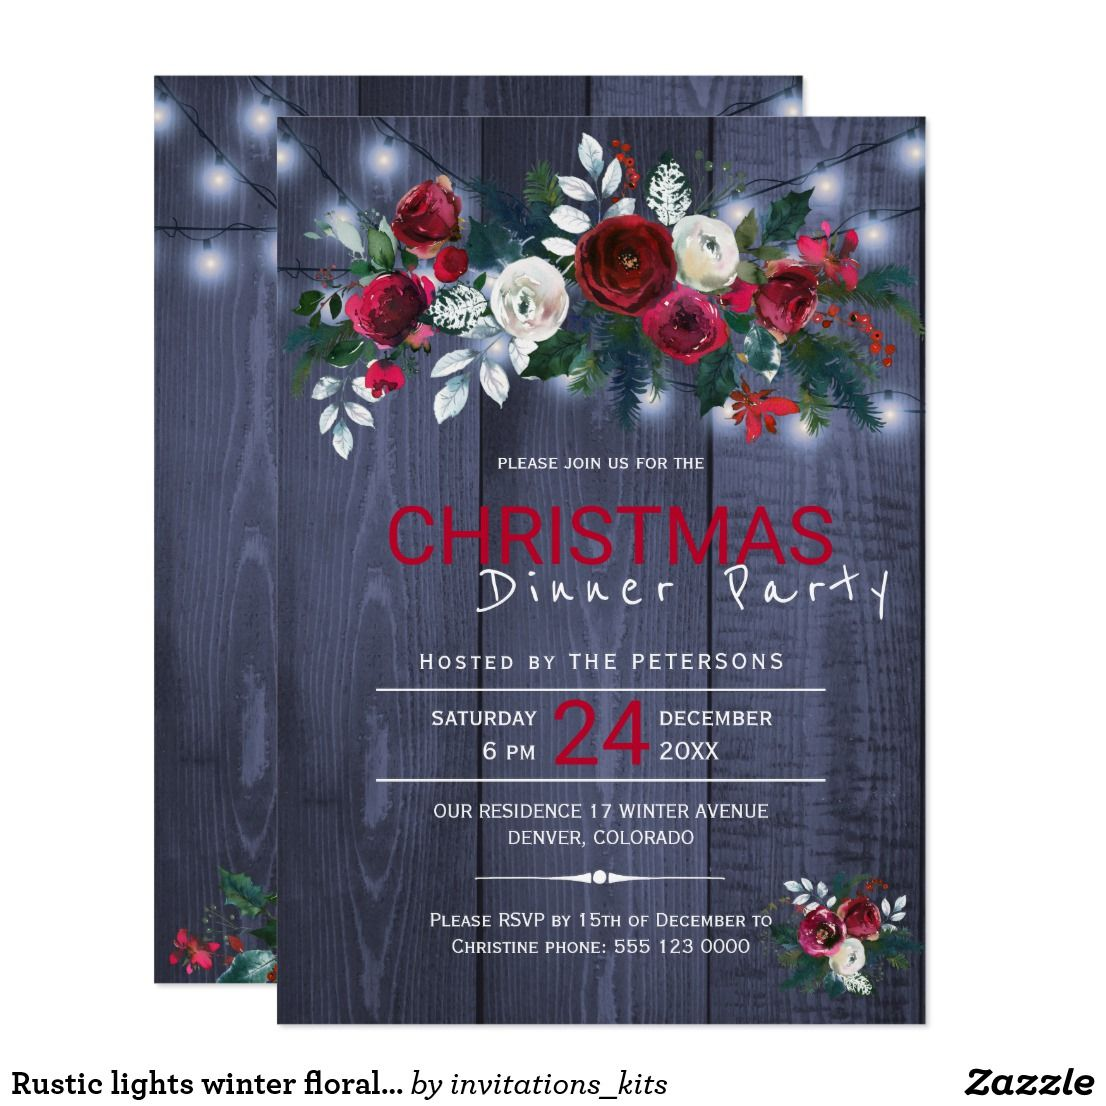 Rustic lights winter floral Christmas dinner party Card | Dinner ...